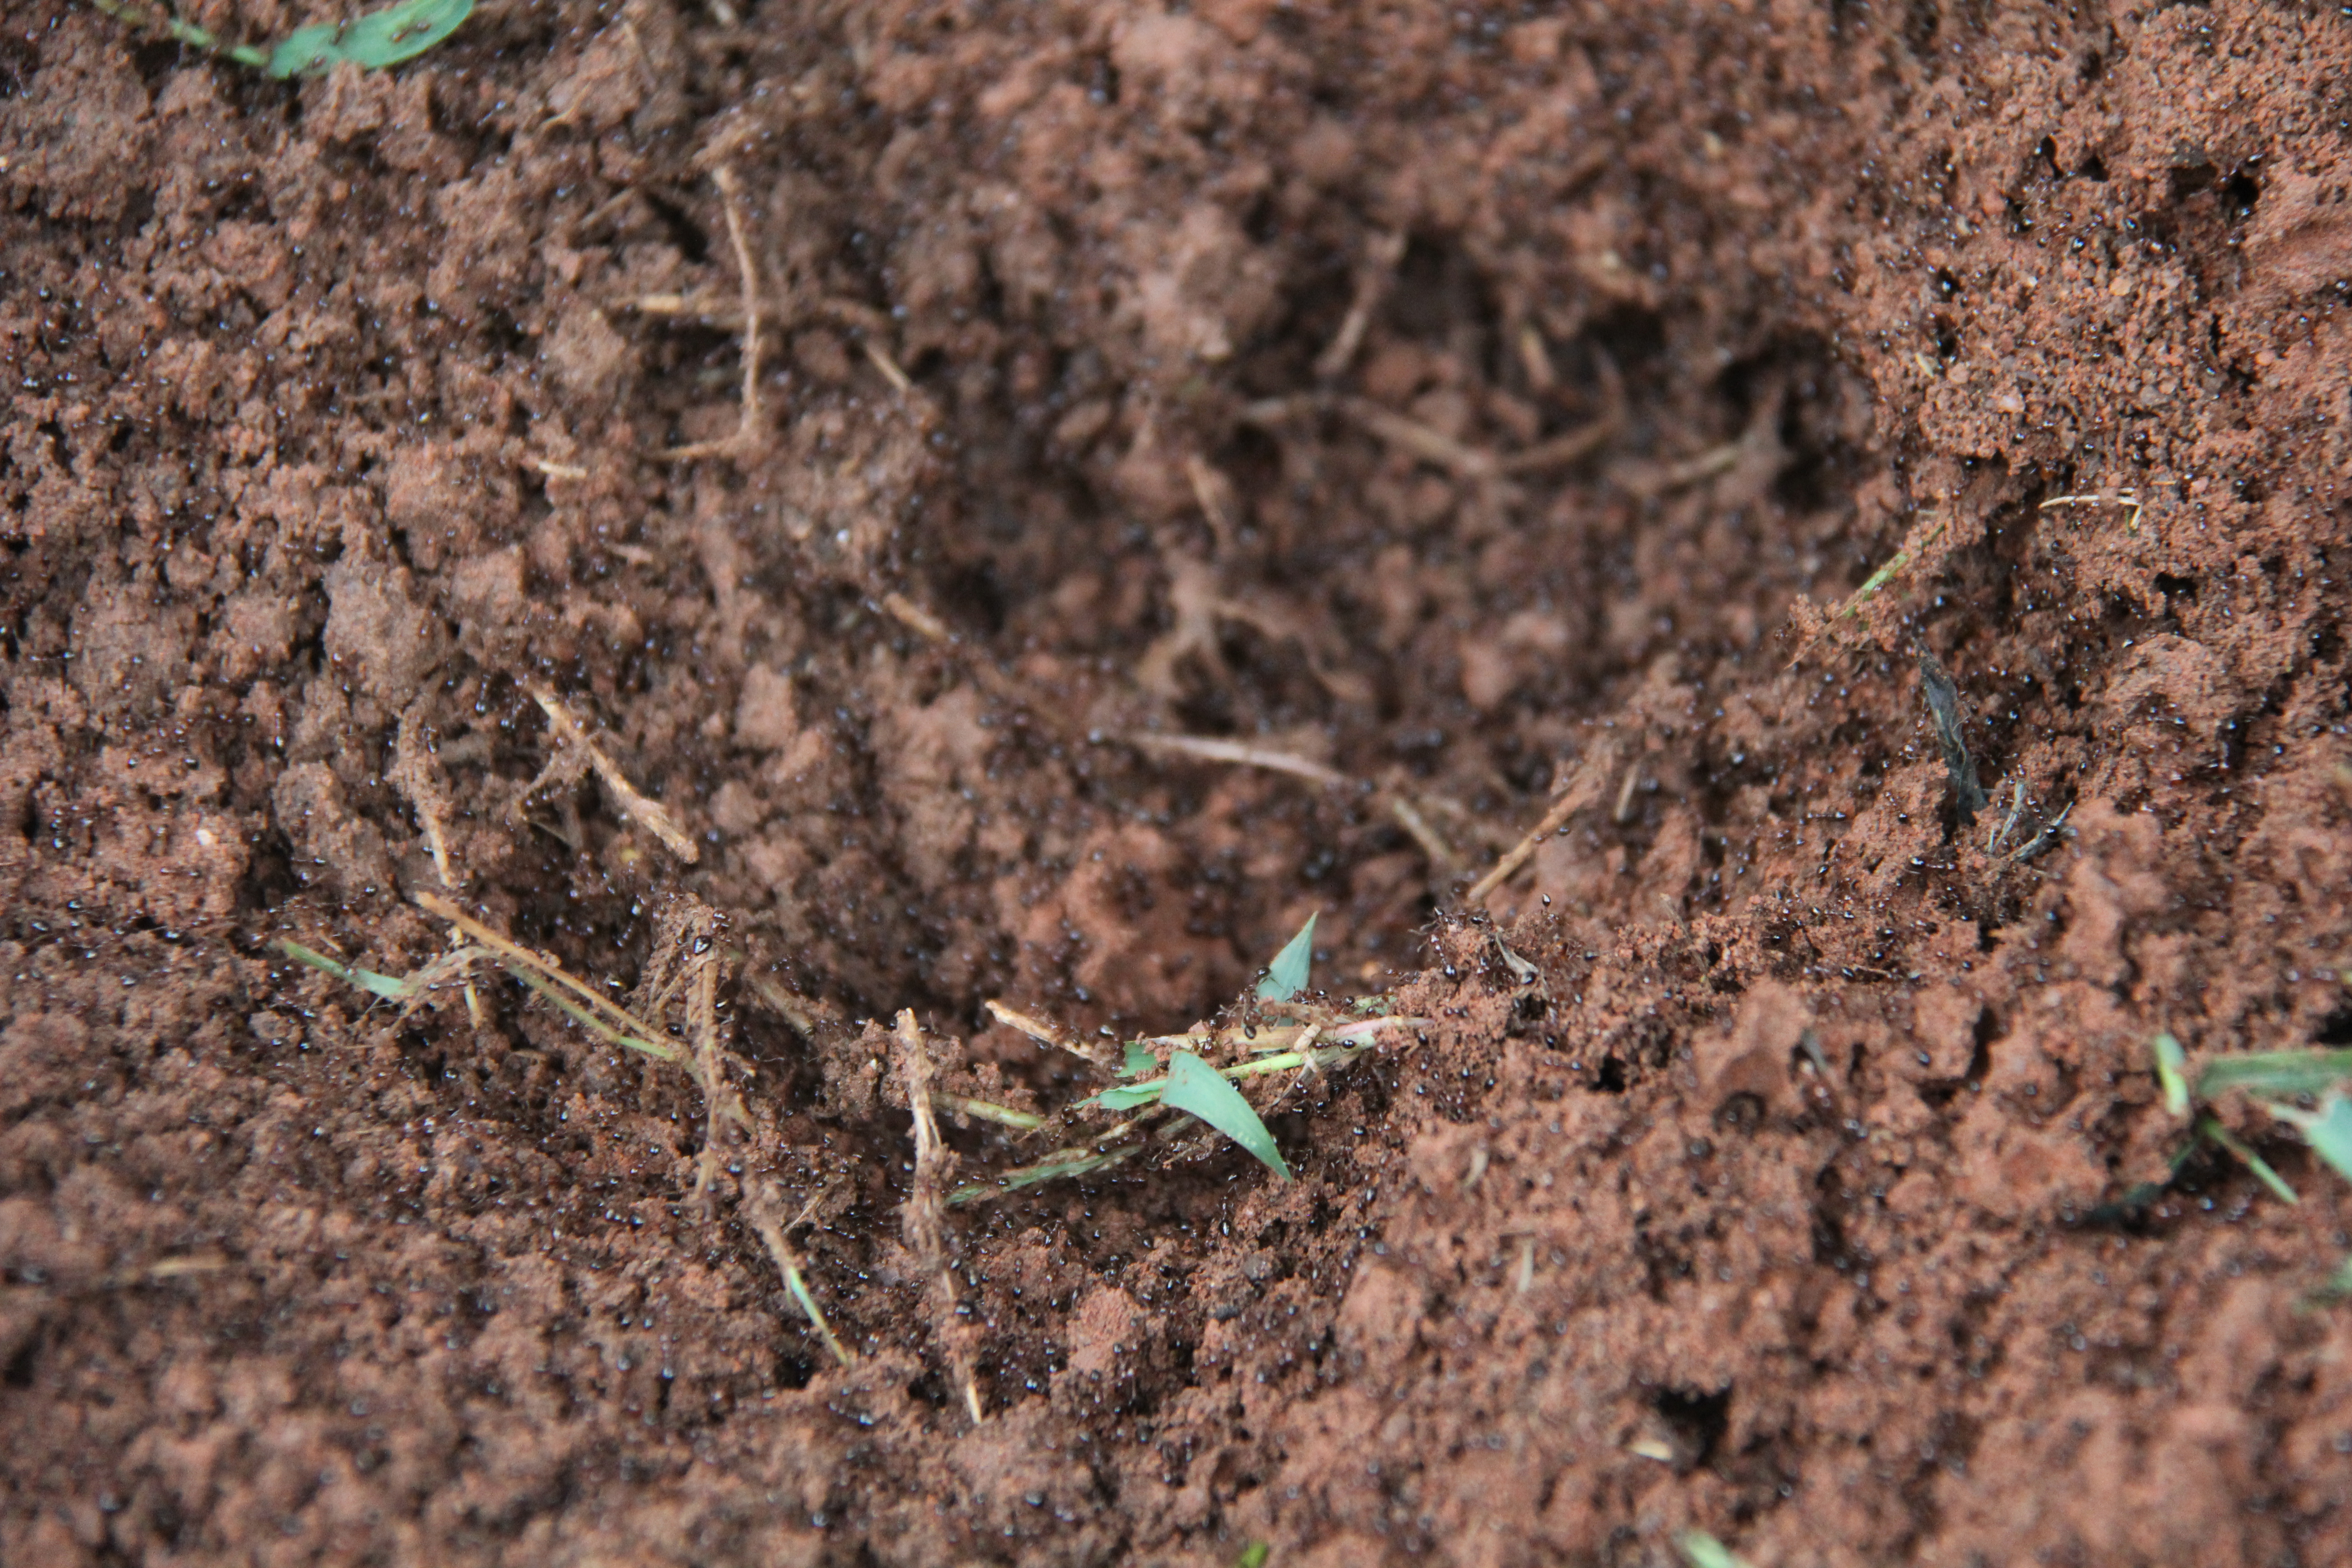 UGA entomologists have found that fire ant colonies can have one or many queens depending on the nest.